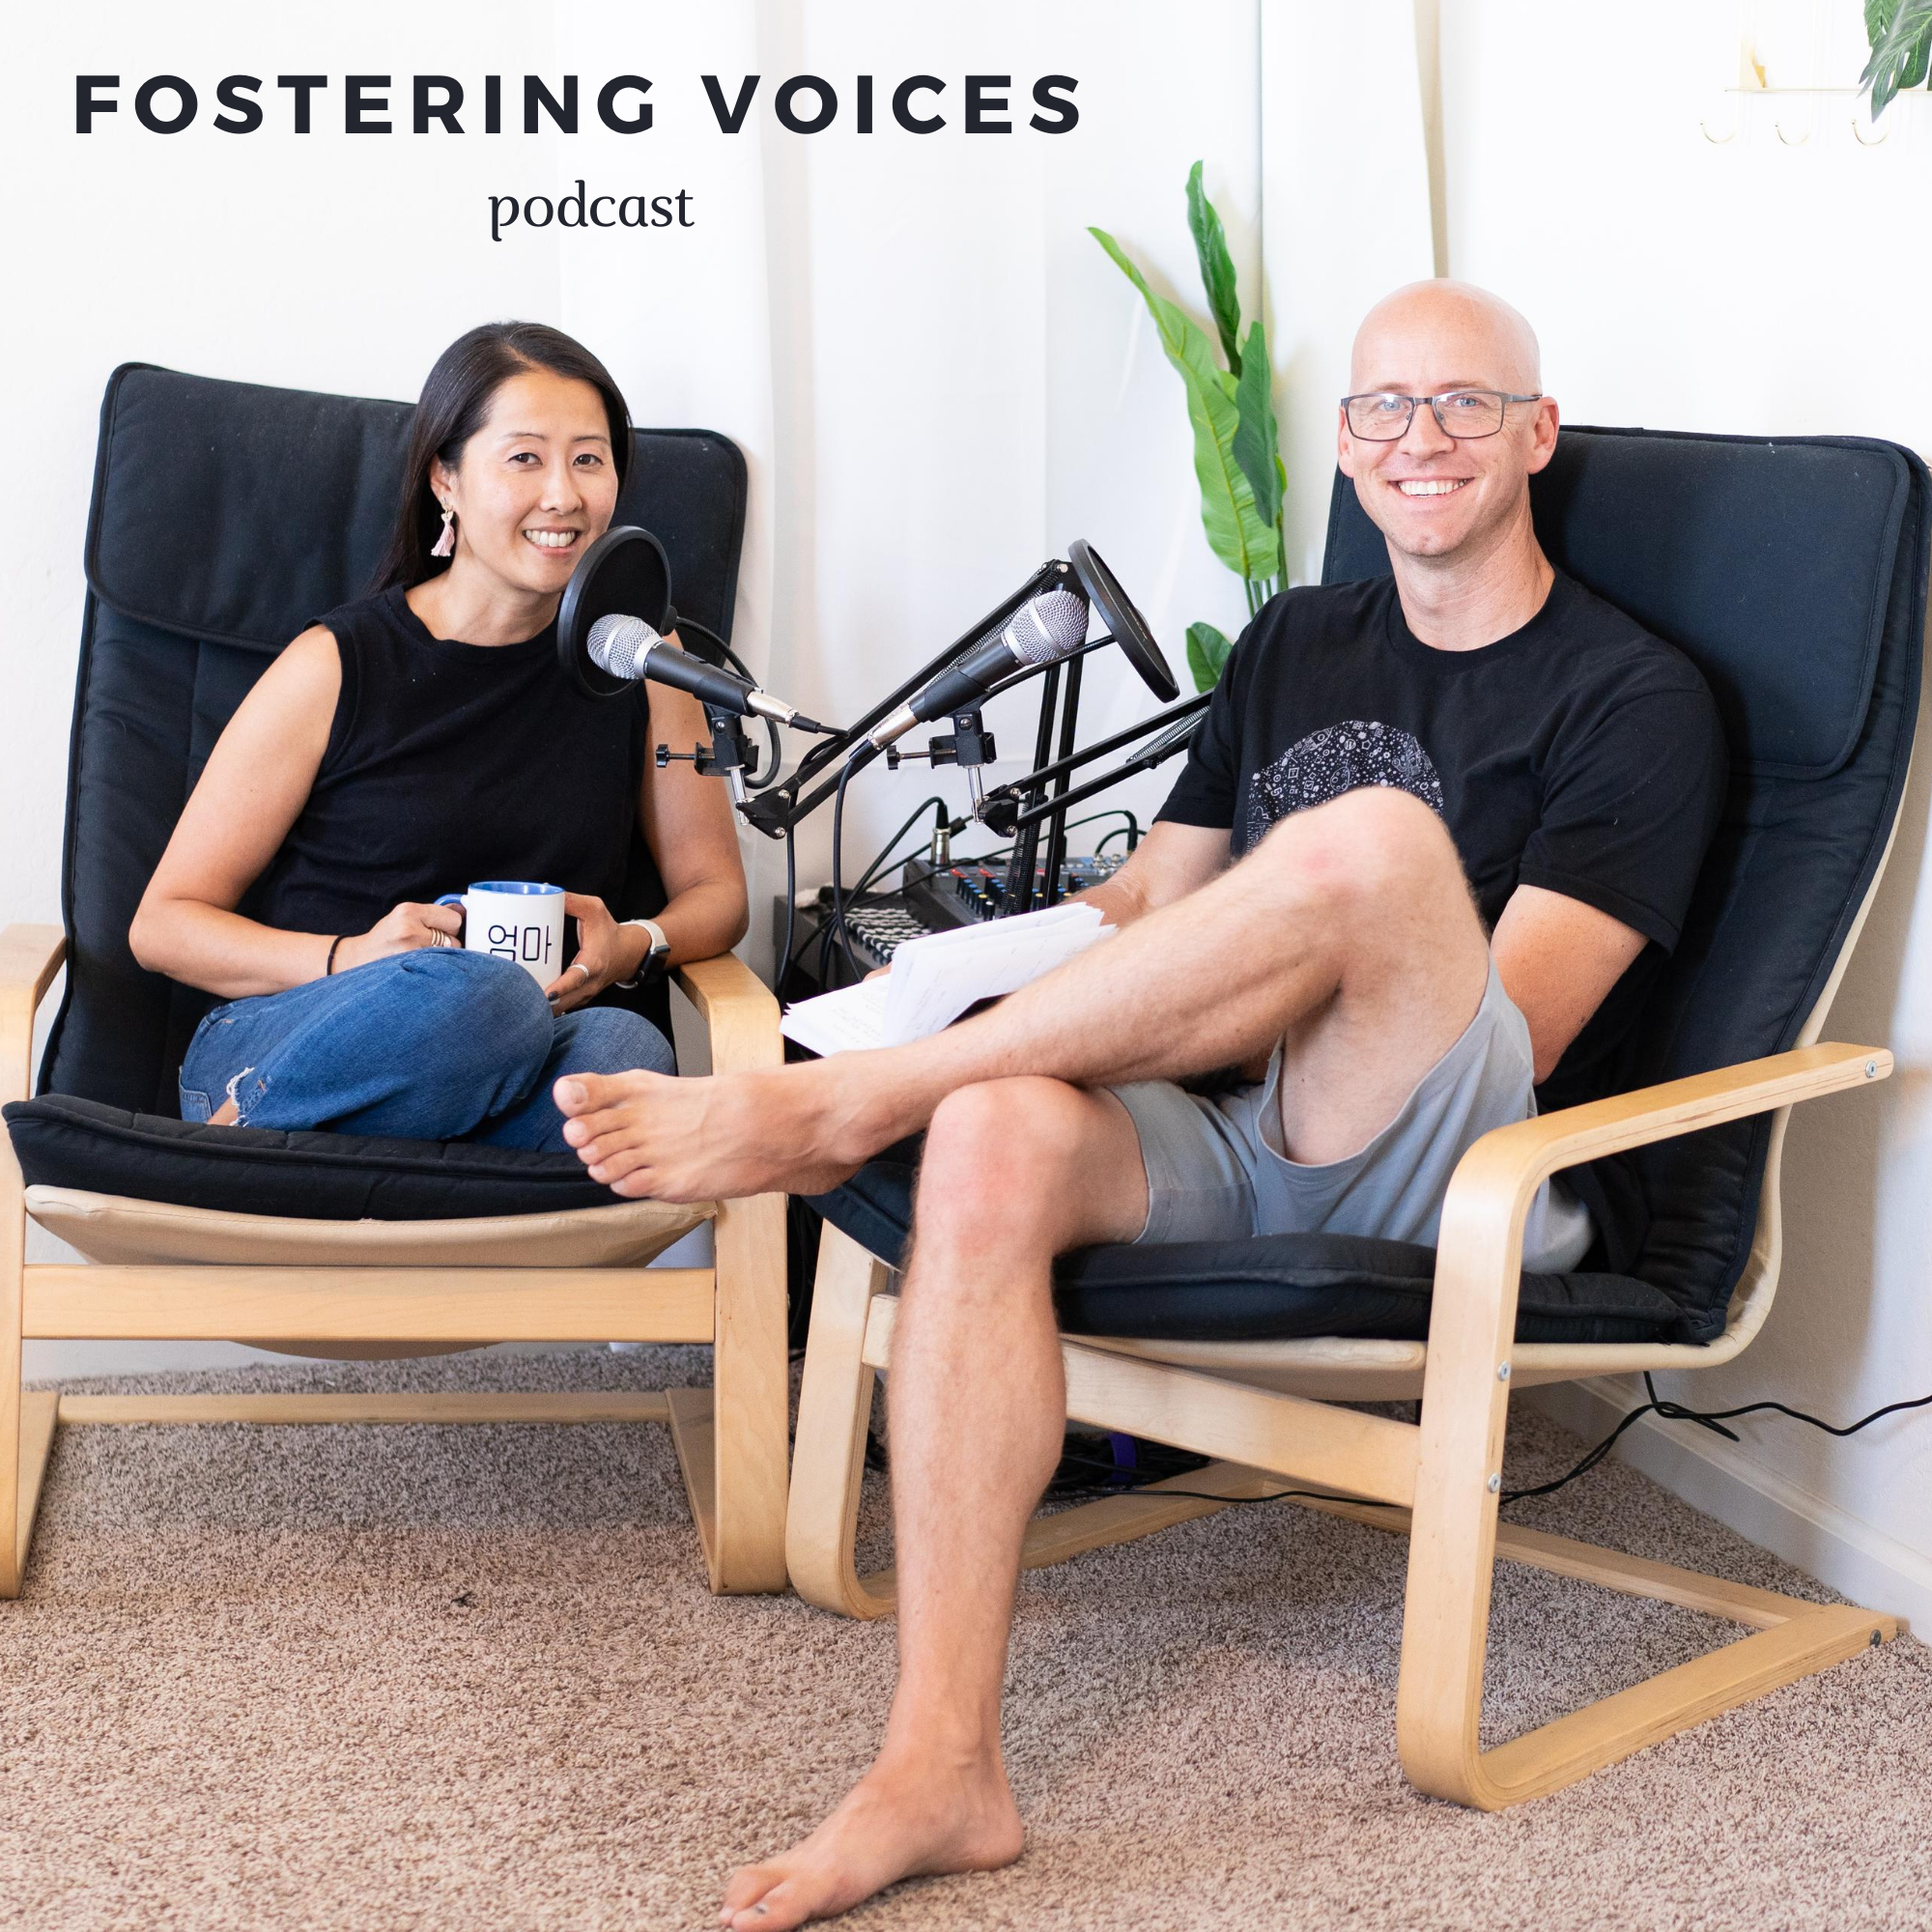 Episode 91: Interview with a Foster Sibling Pt 2 show art